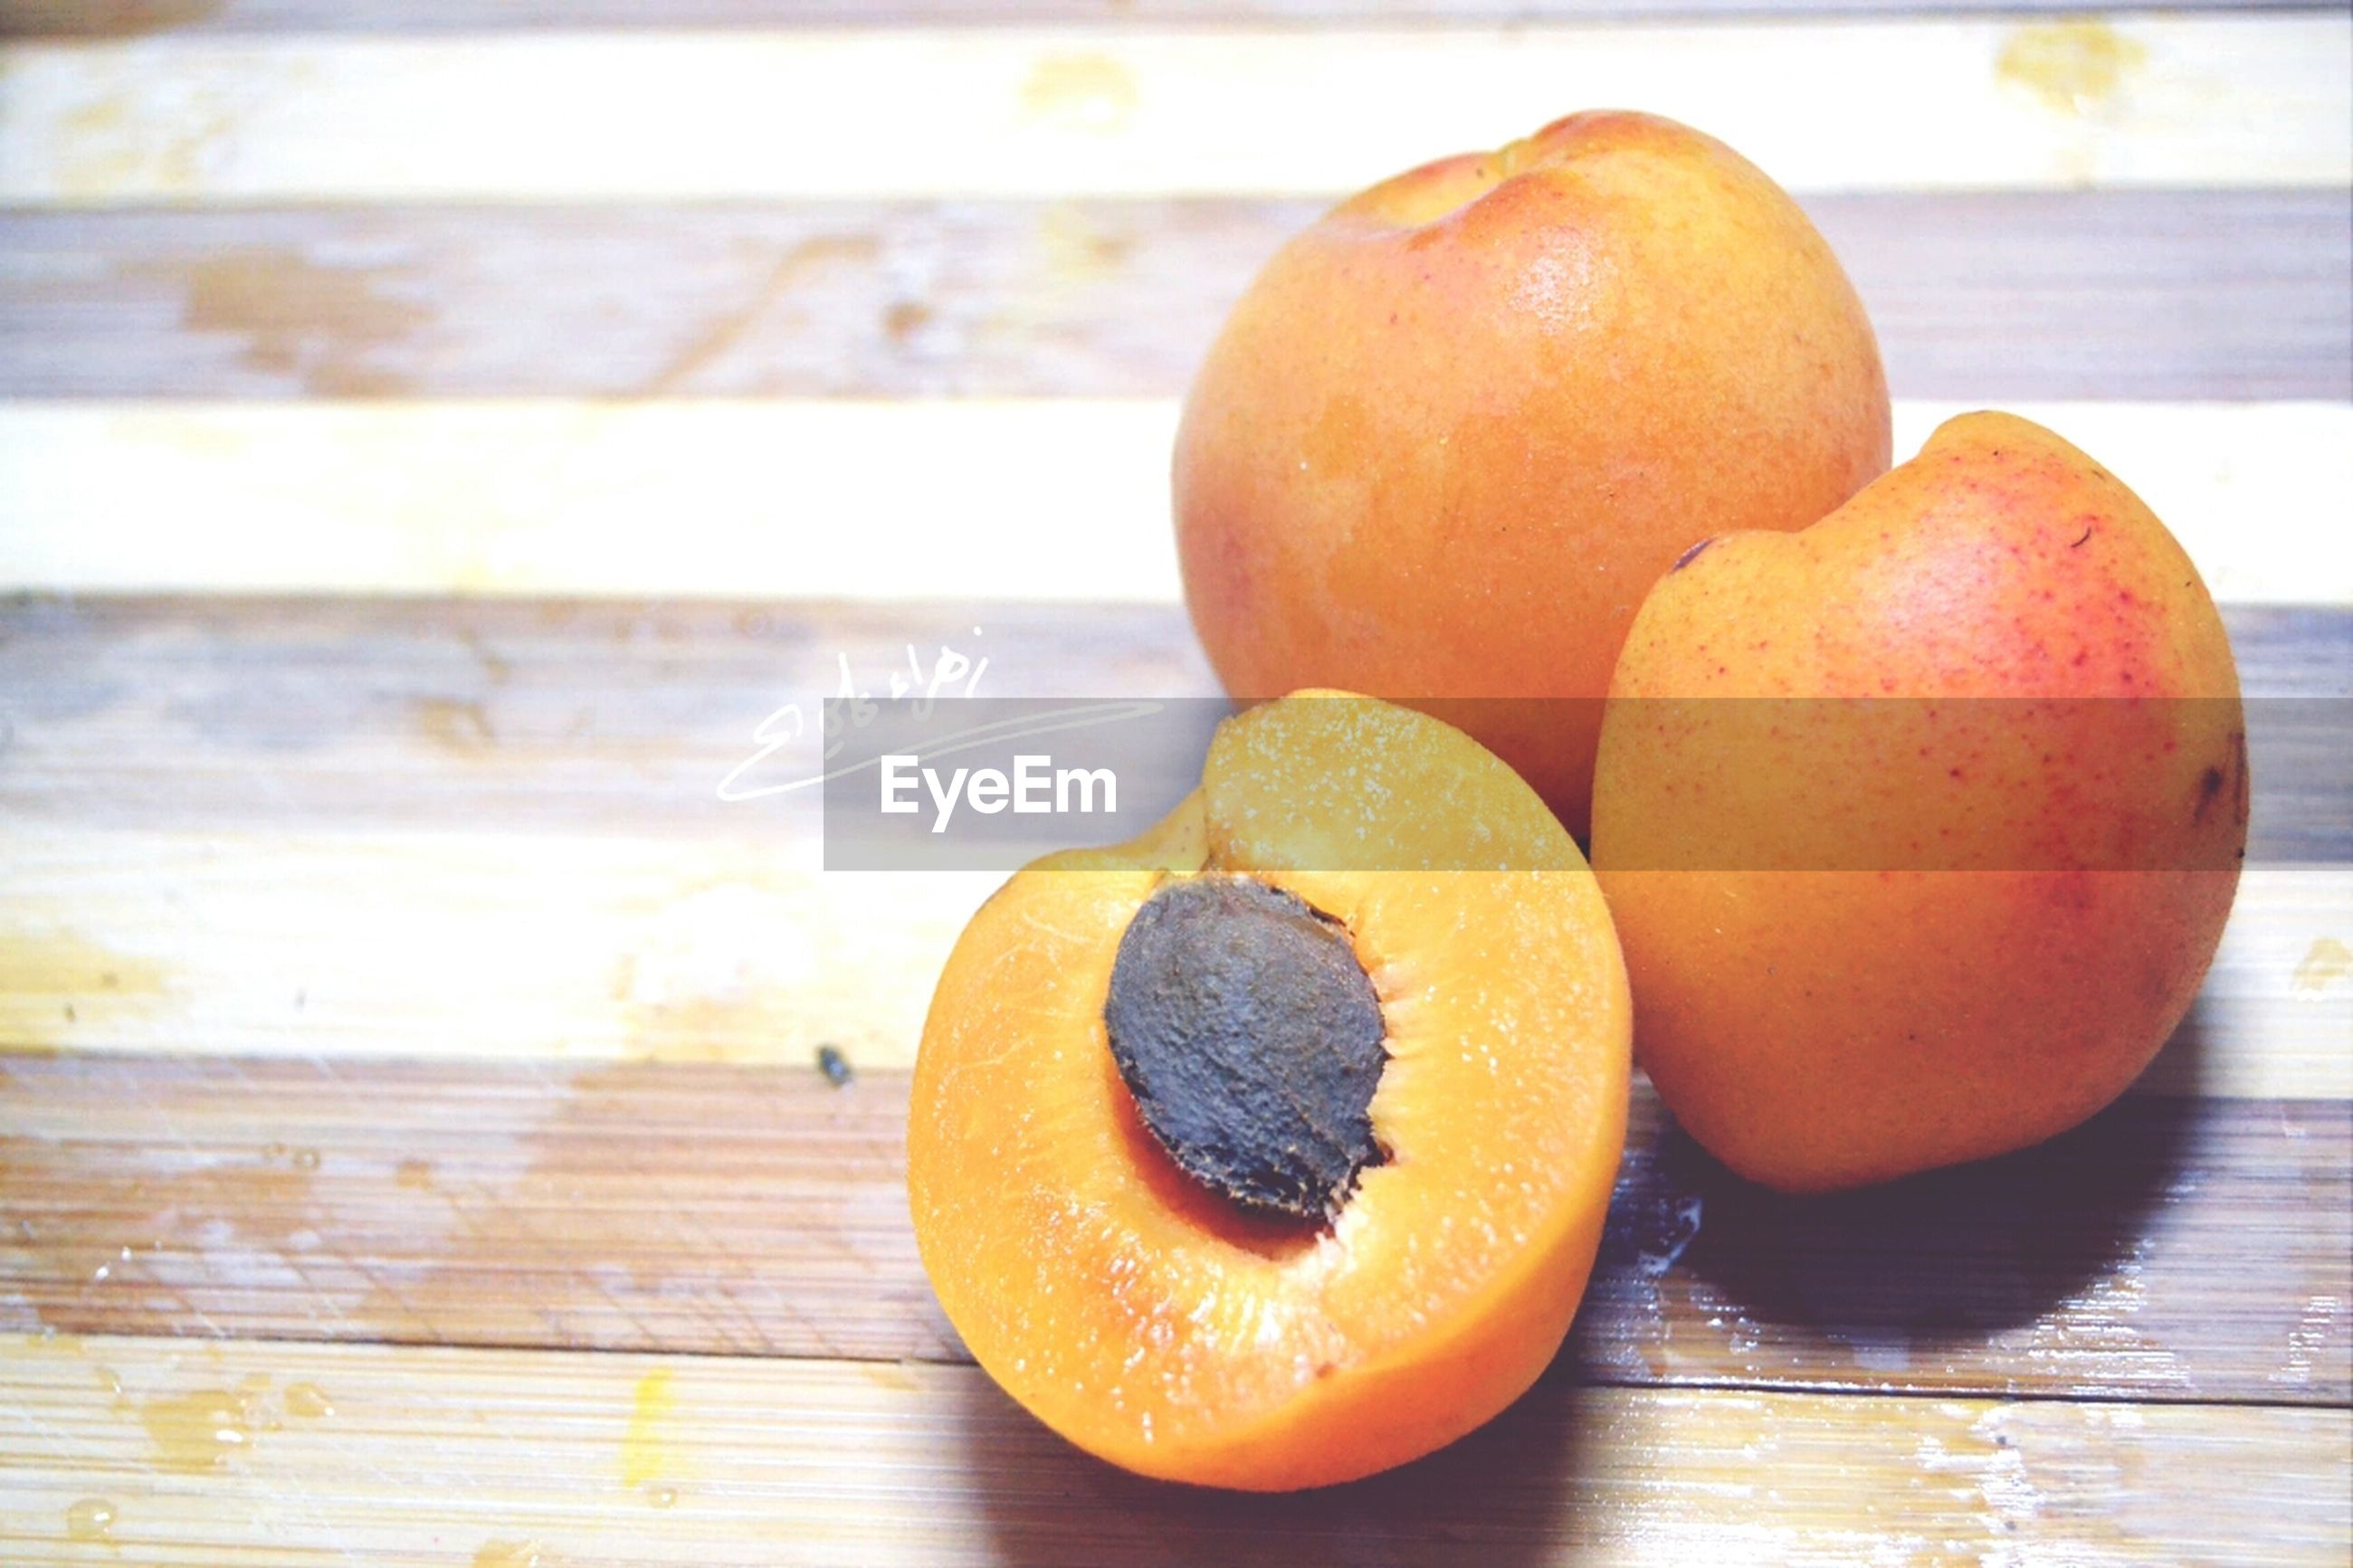 food and drink, table, still life, food, fruit, indoors, freshness, close-up, healthy eating, orange color, focus on foreground, wood - material, sweet food, no people, wooden, orange - fruit, brown, selective focus, ripe, shape